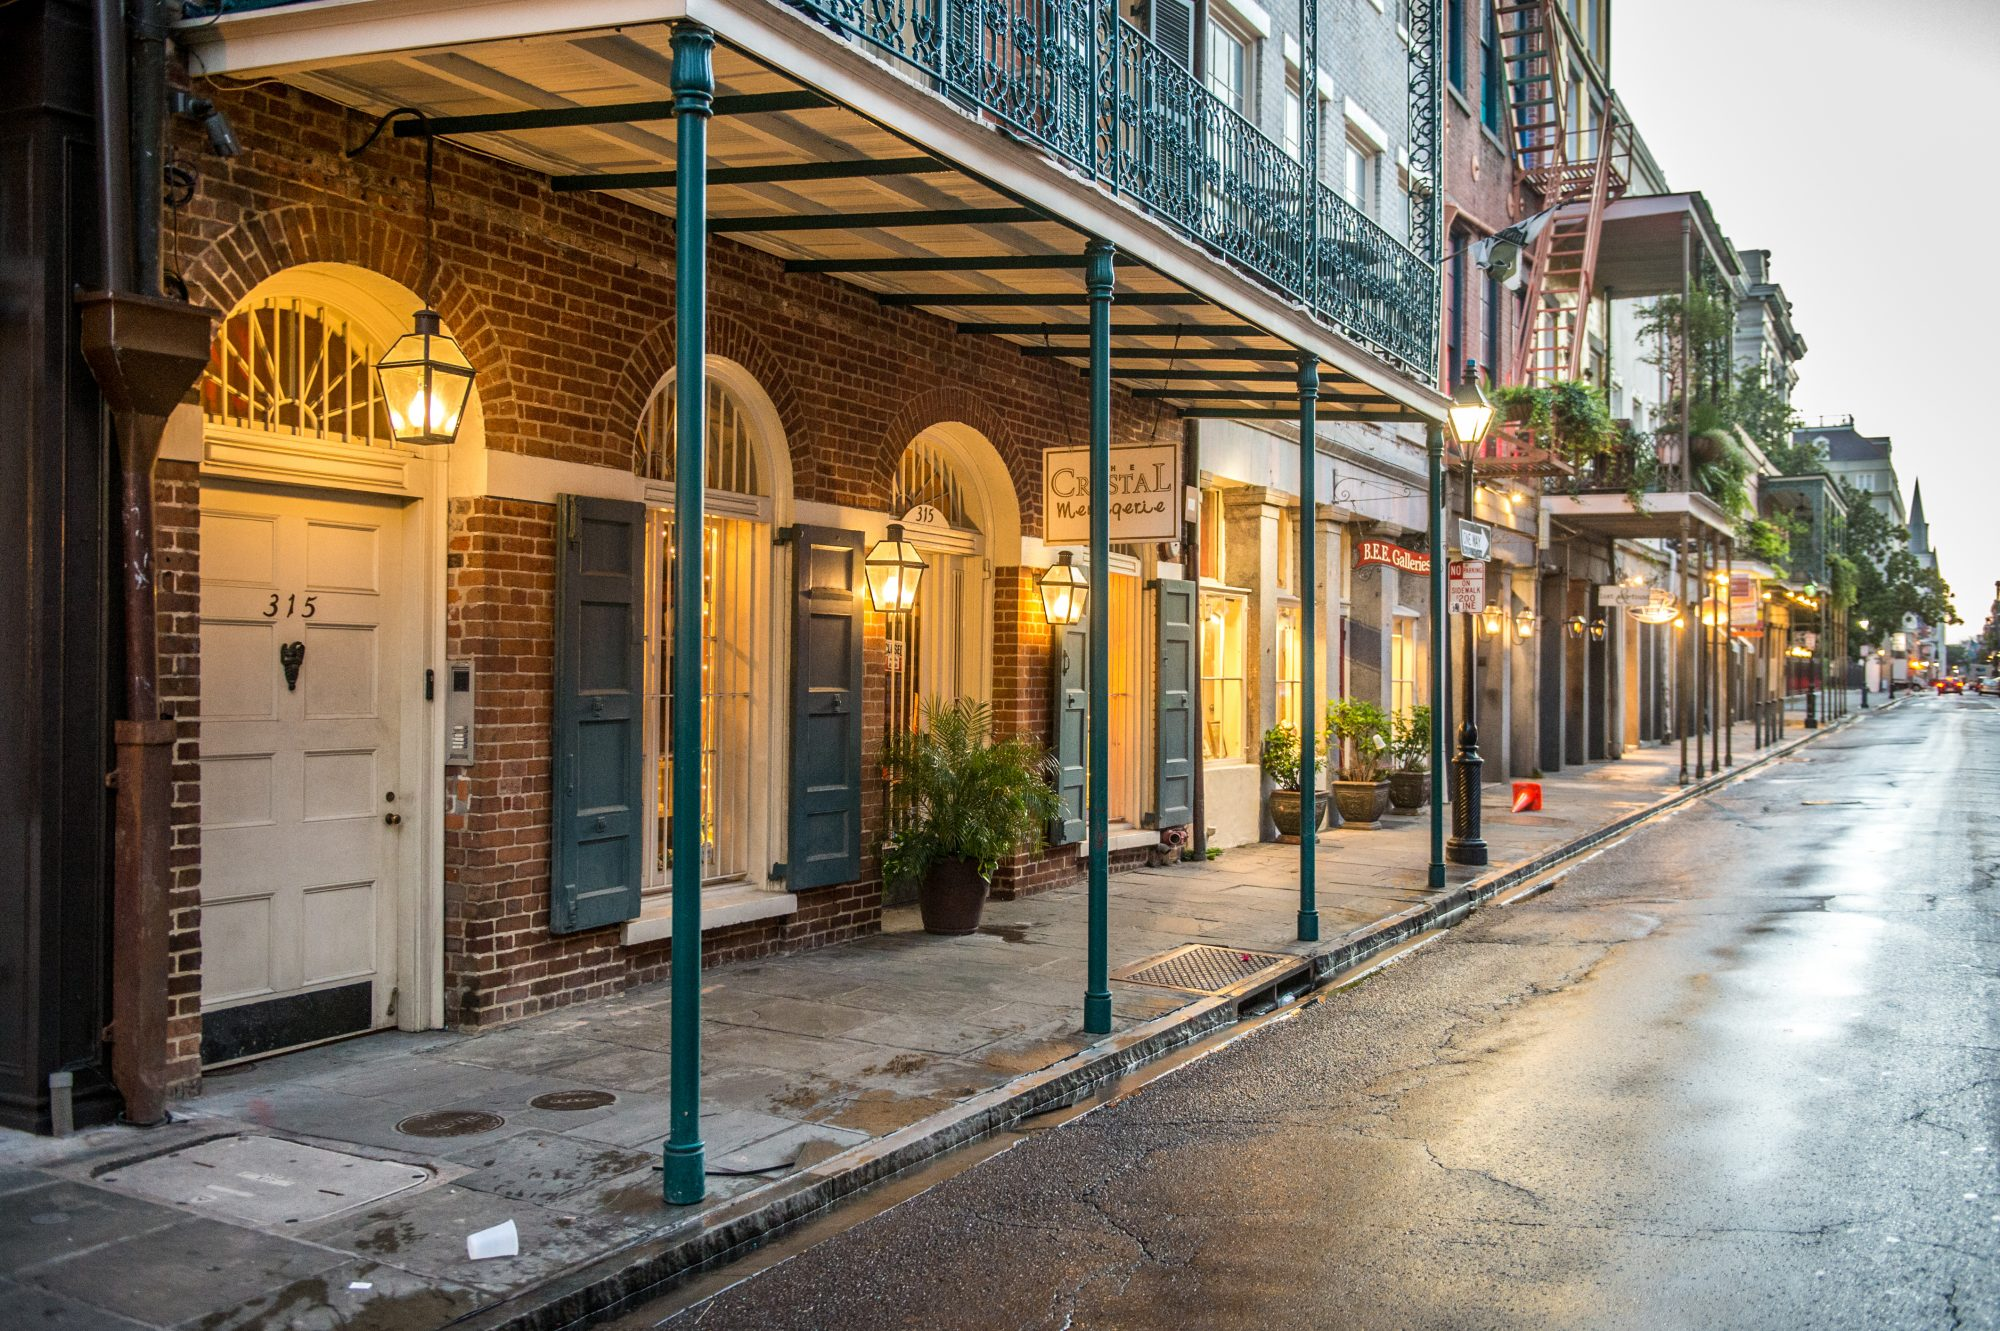 New Orleans Rainy Street